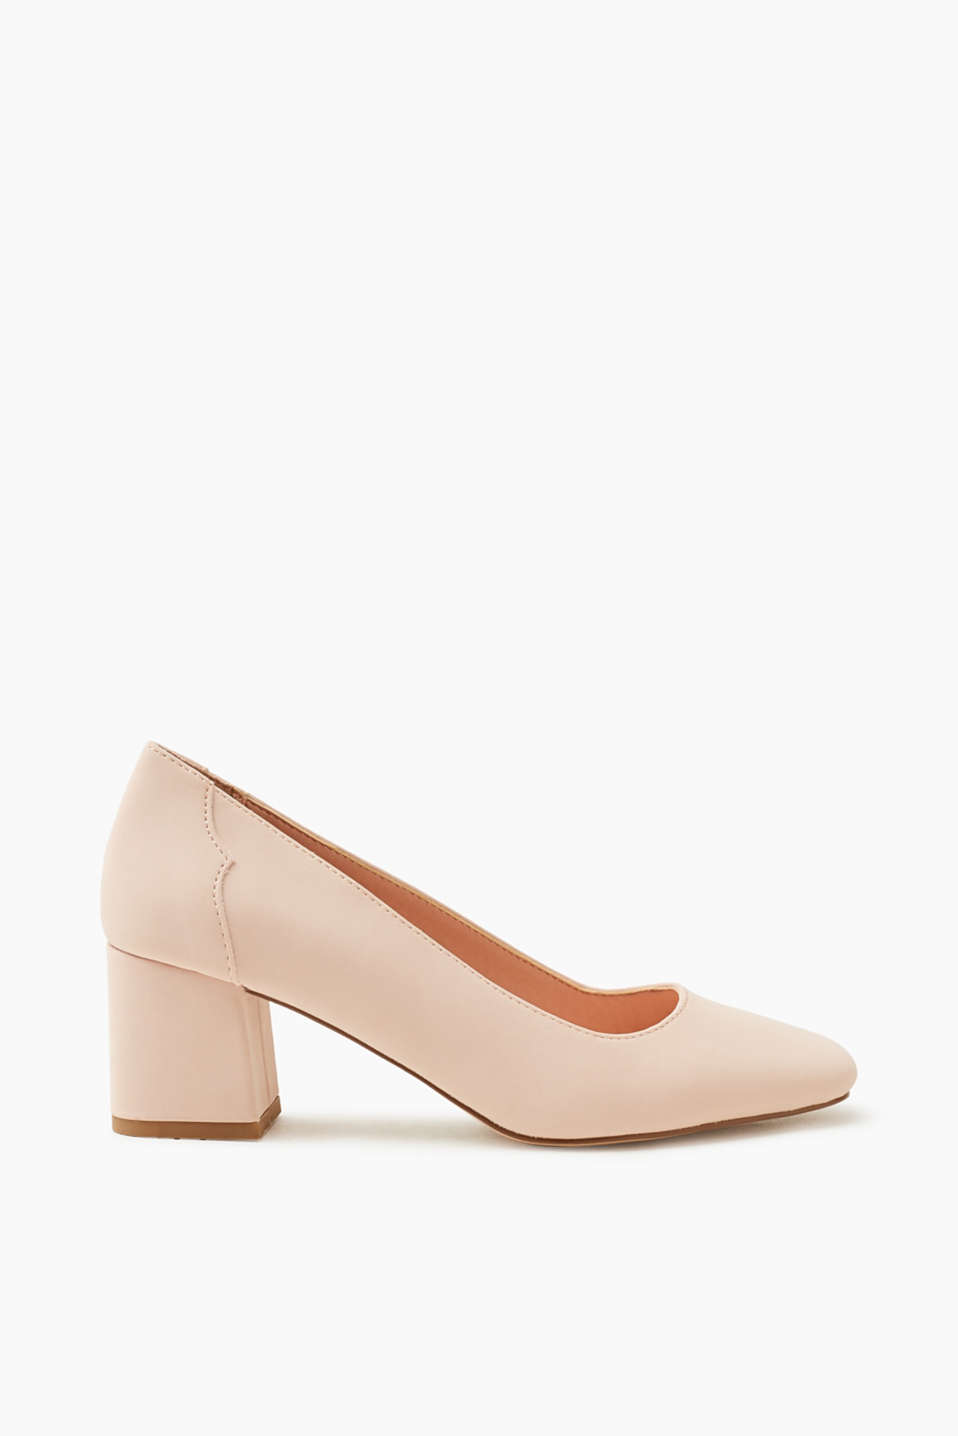 Esprit - Timeless court shoes with a block heel